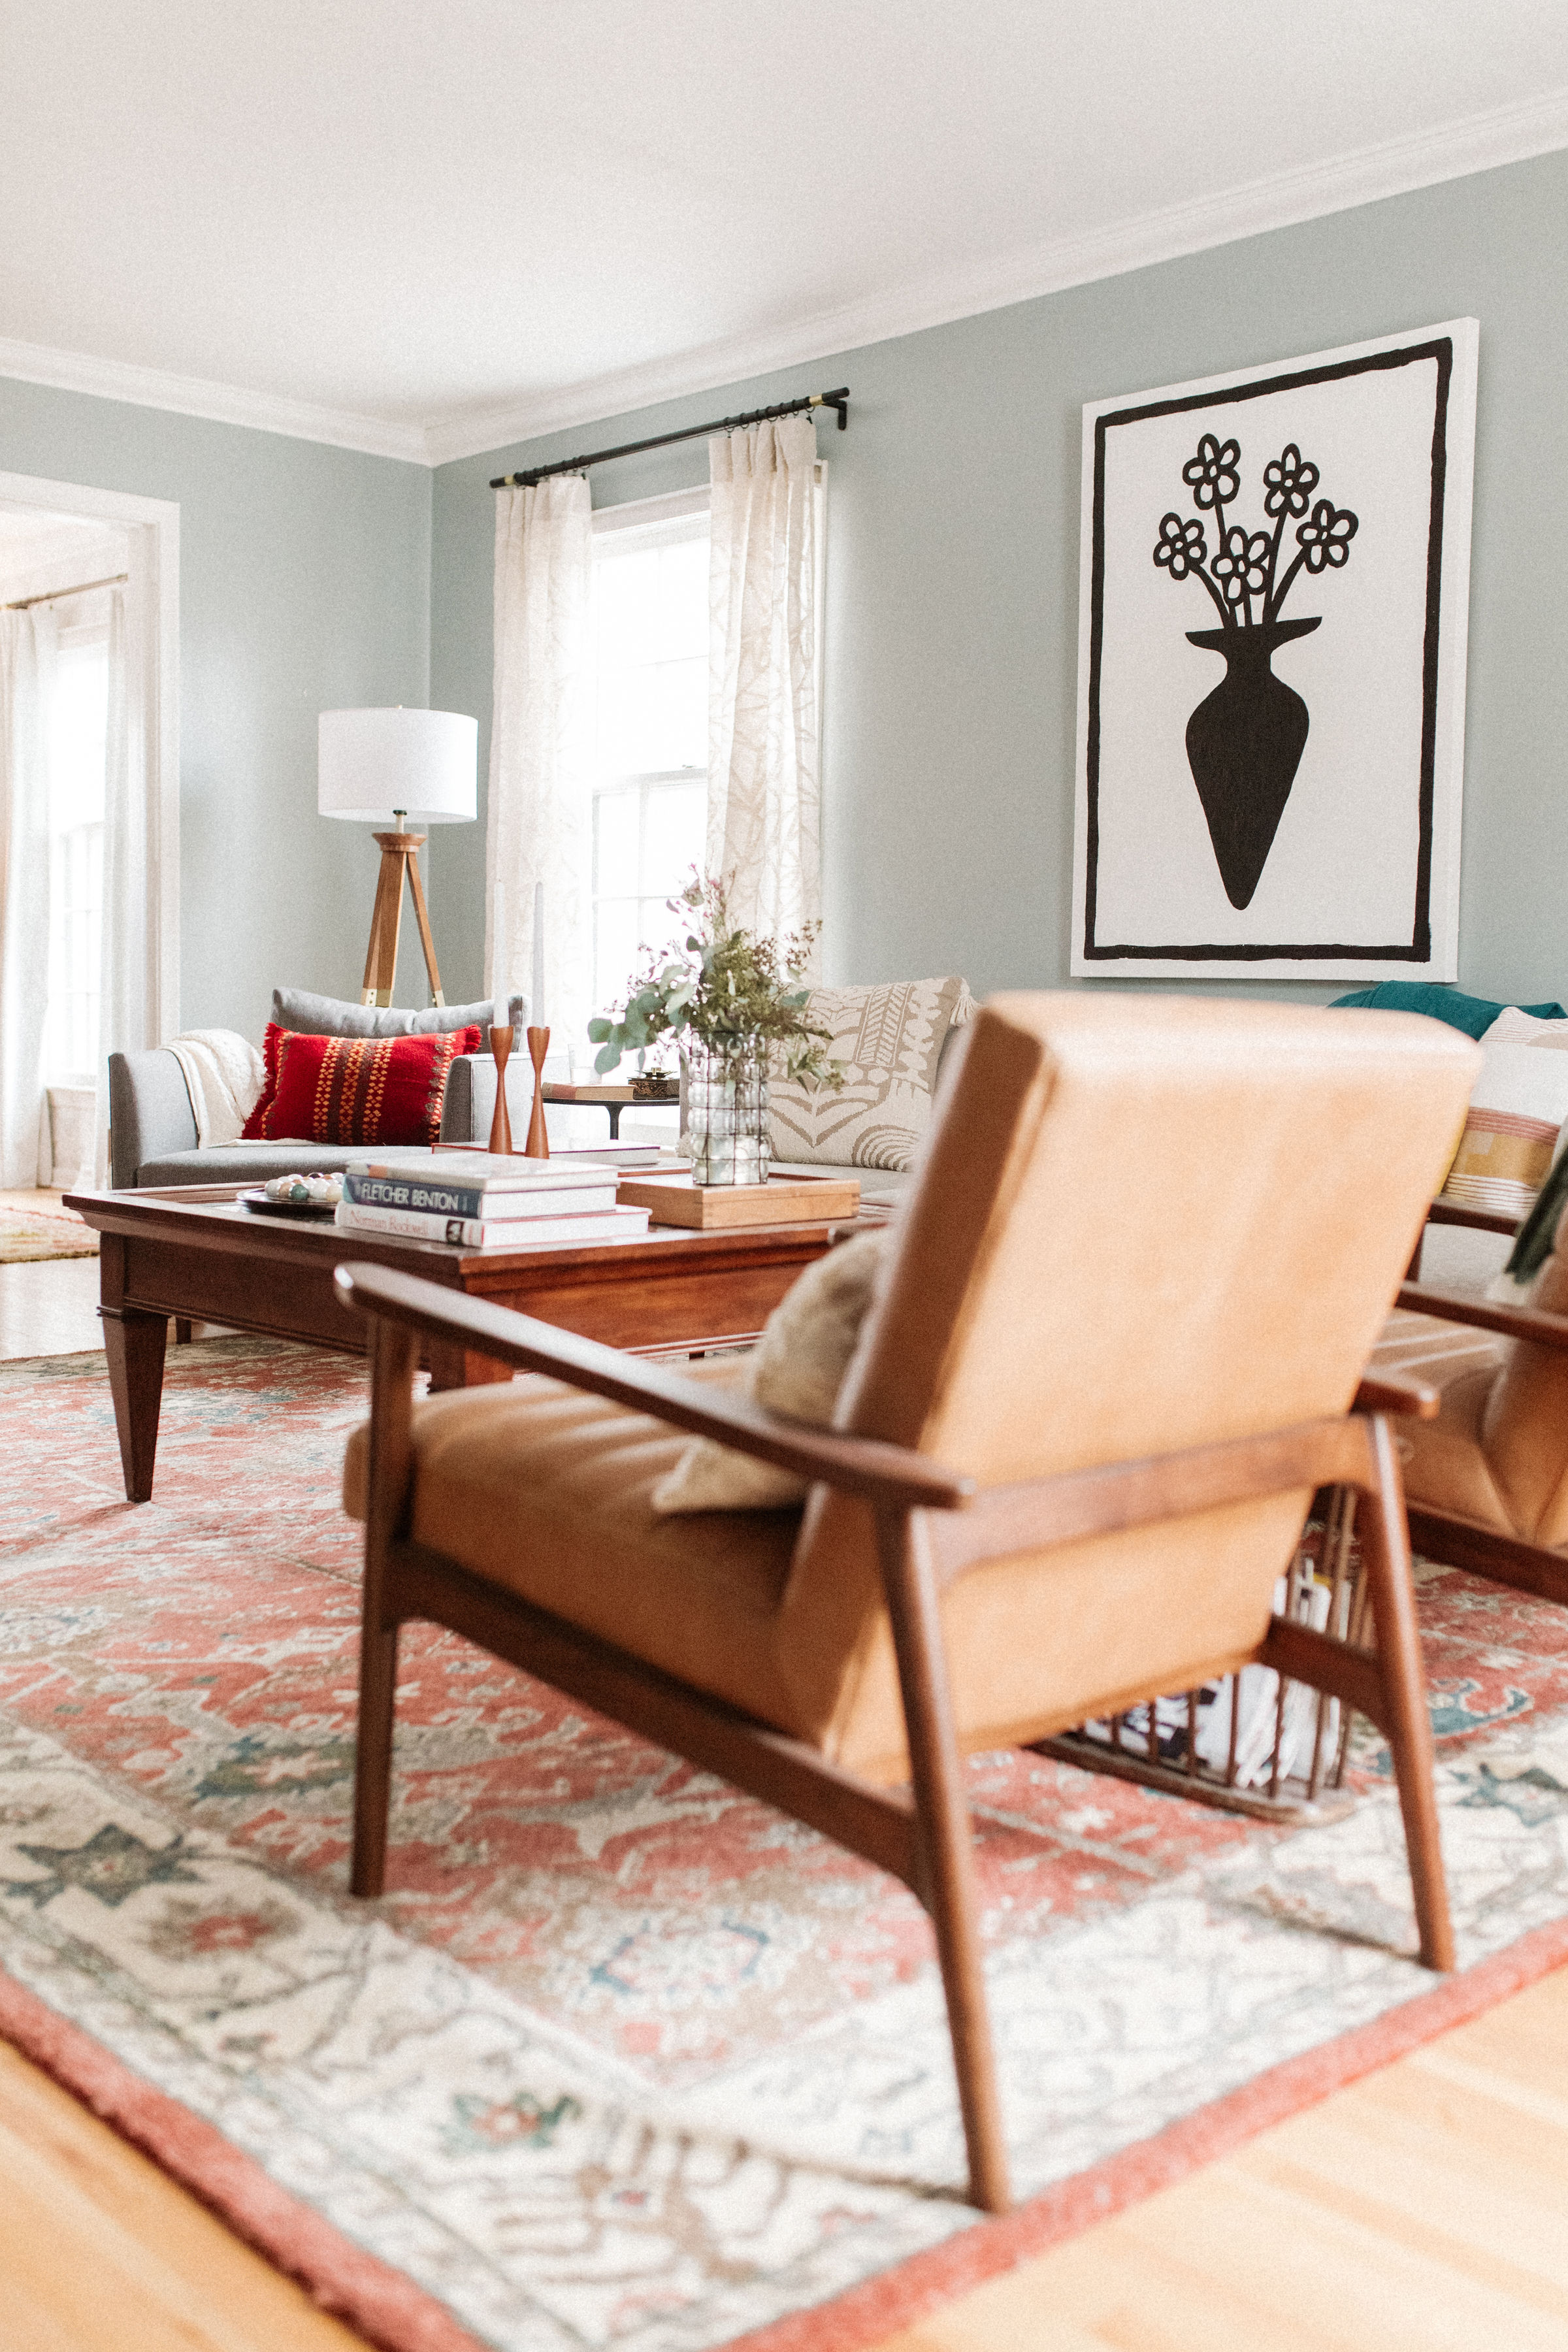 Midcentury traditional living room, warm muted colors, pop art, leather chairs